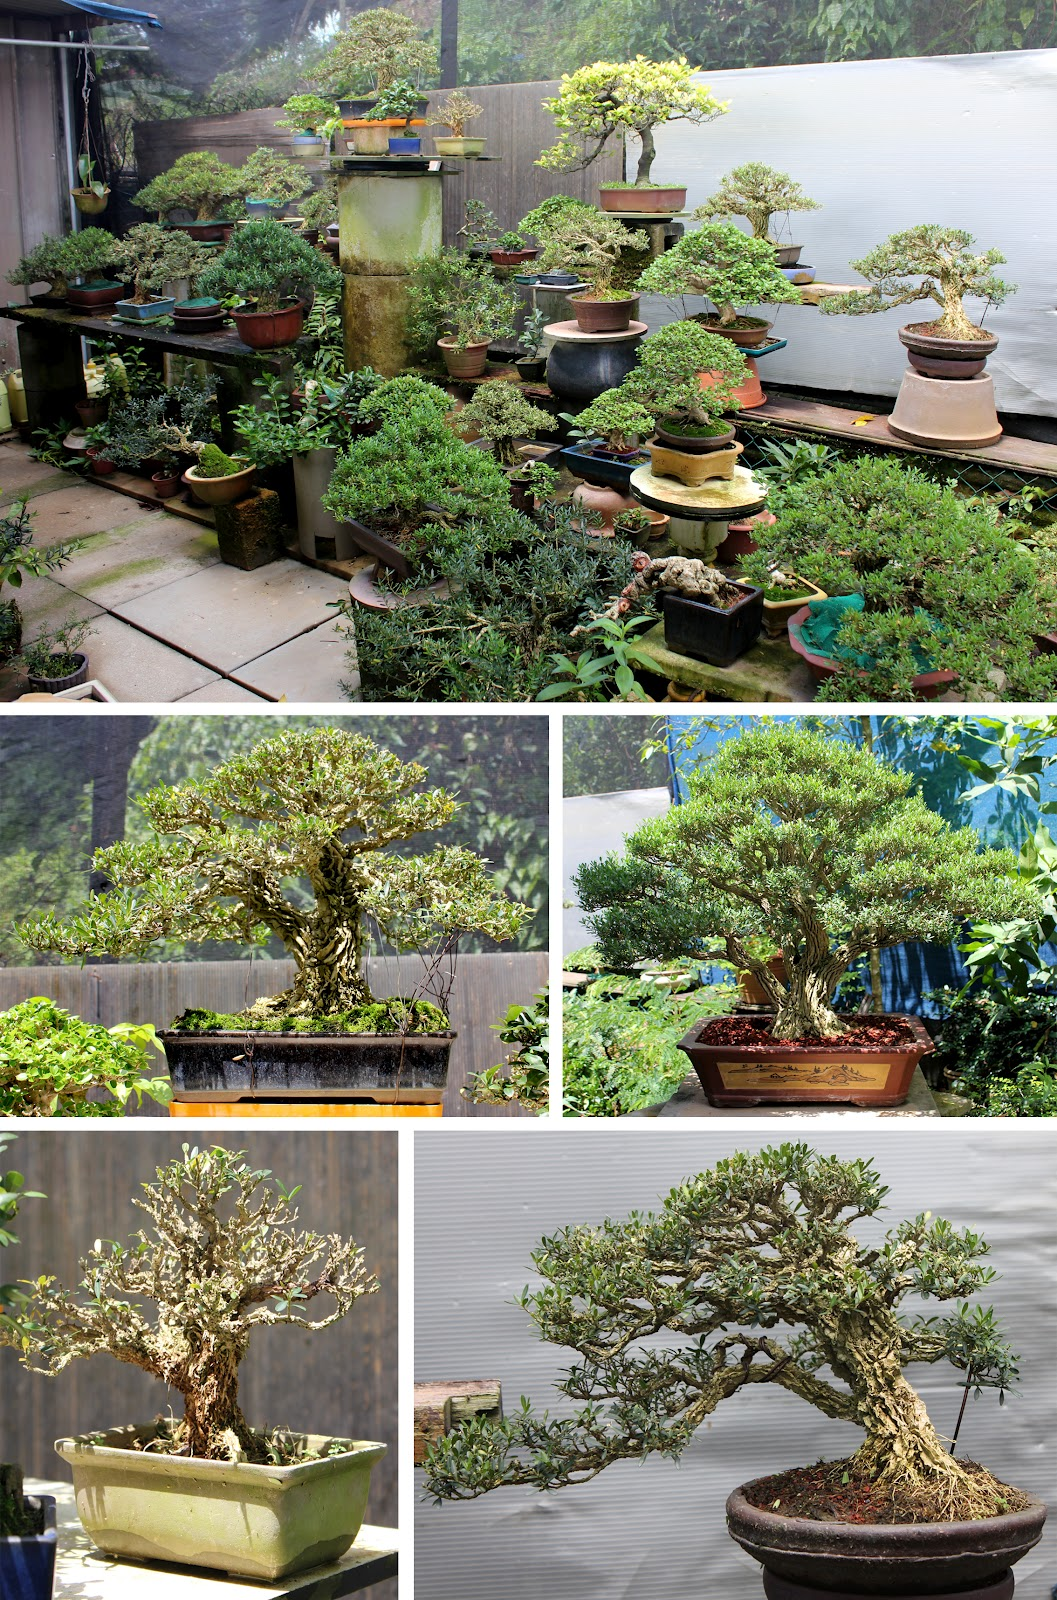 Kigawa39s Bonsai Blog Cheng Tai Nursery Singapore